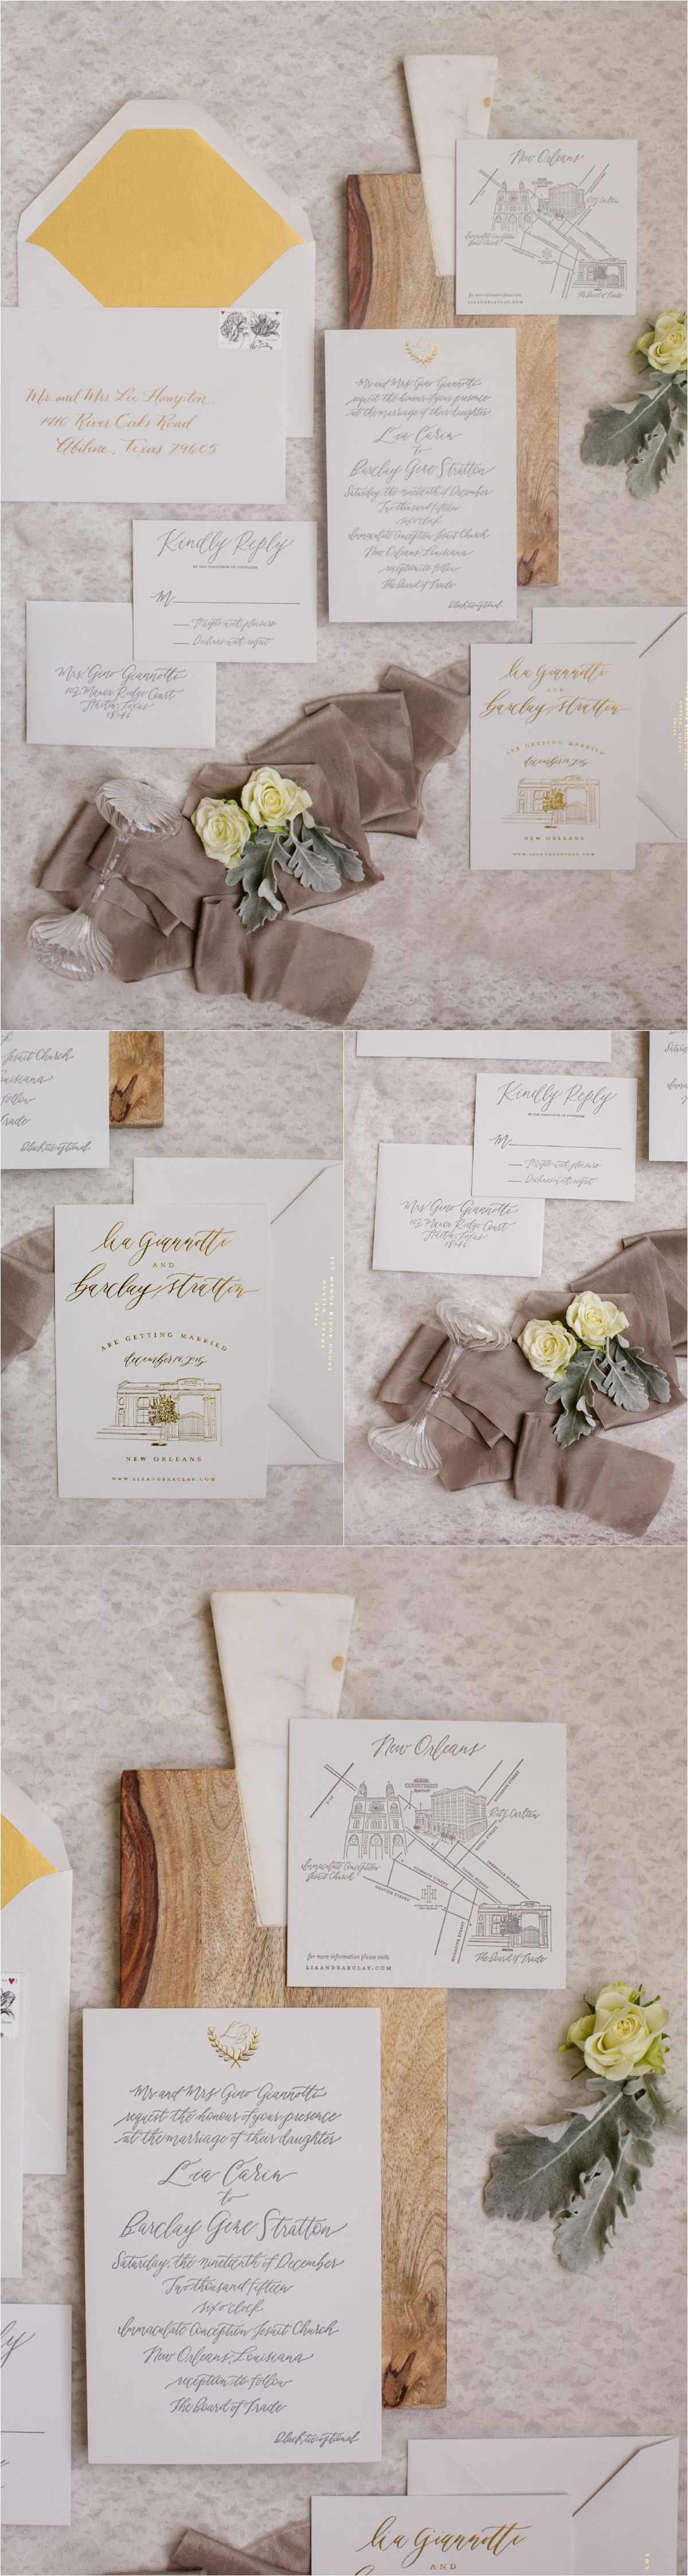 wedding invitation details with white paper stock and gold envelope liner, gray silk ribbon and floral details